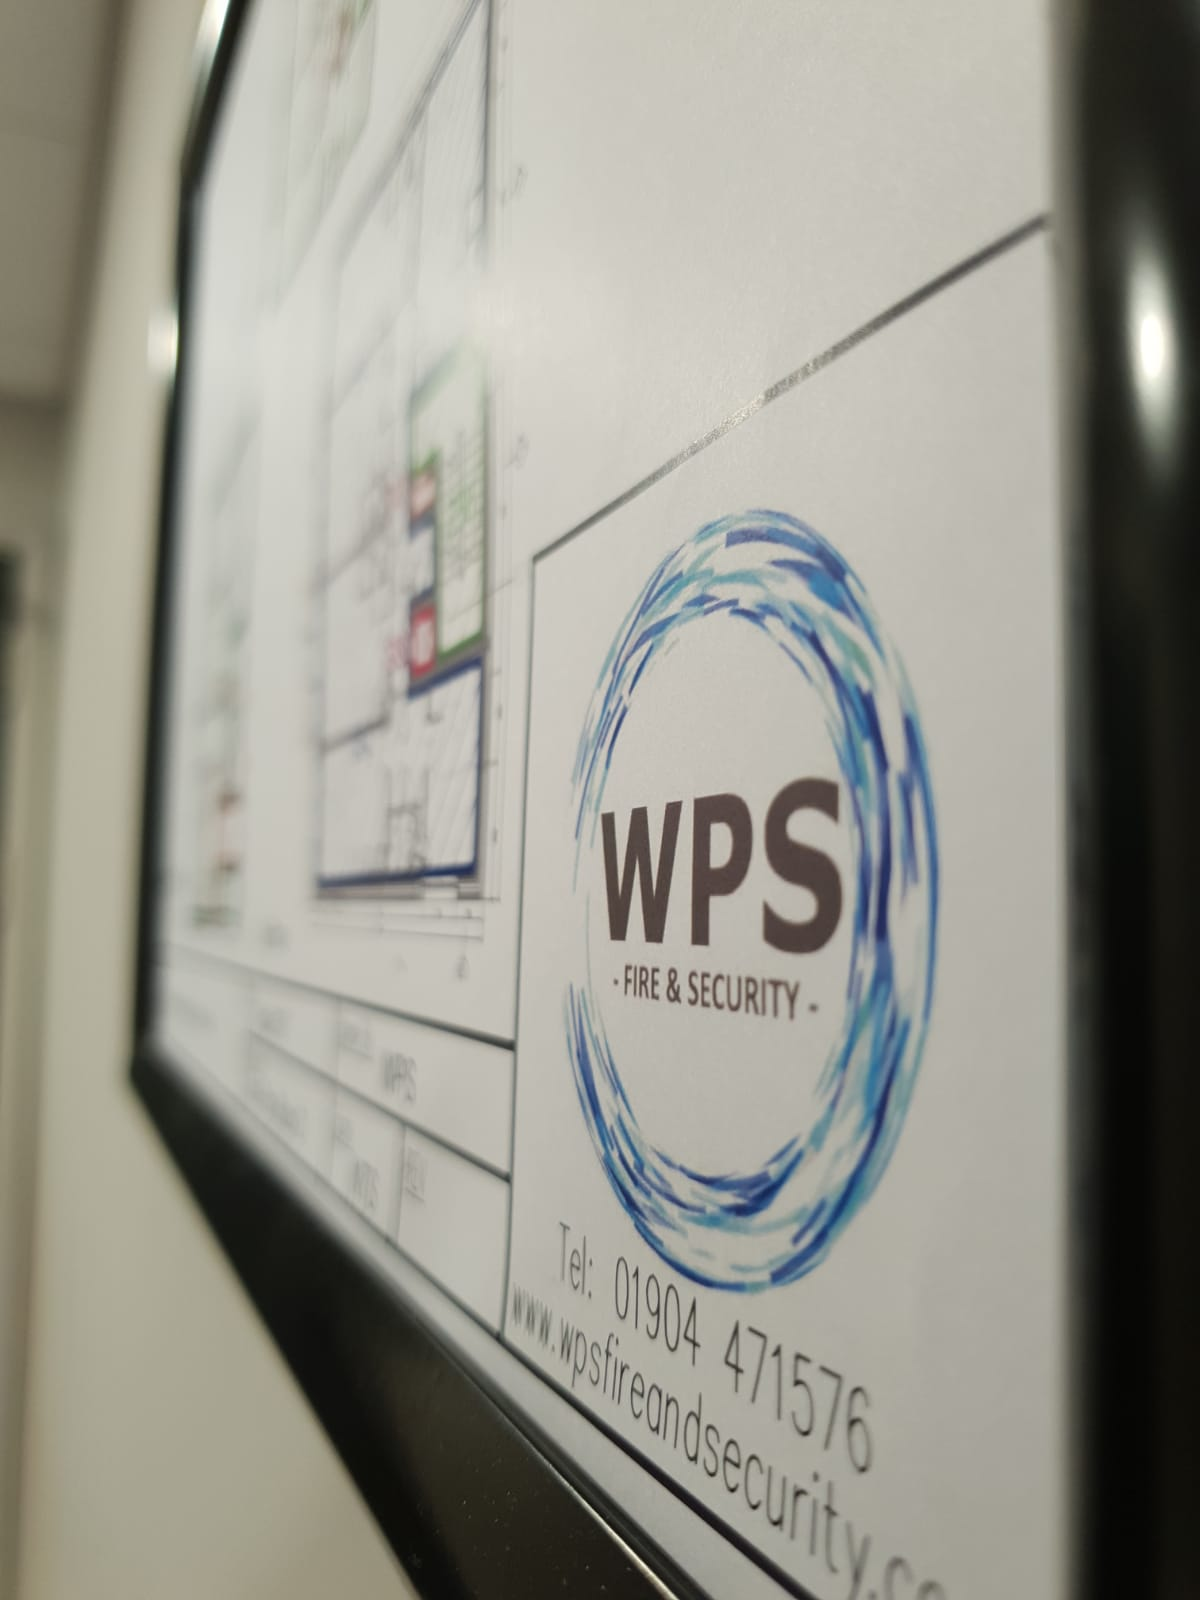 WPS Fire and Security fire alarm system designs and plans.